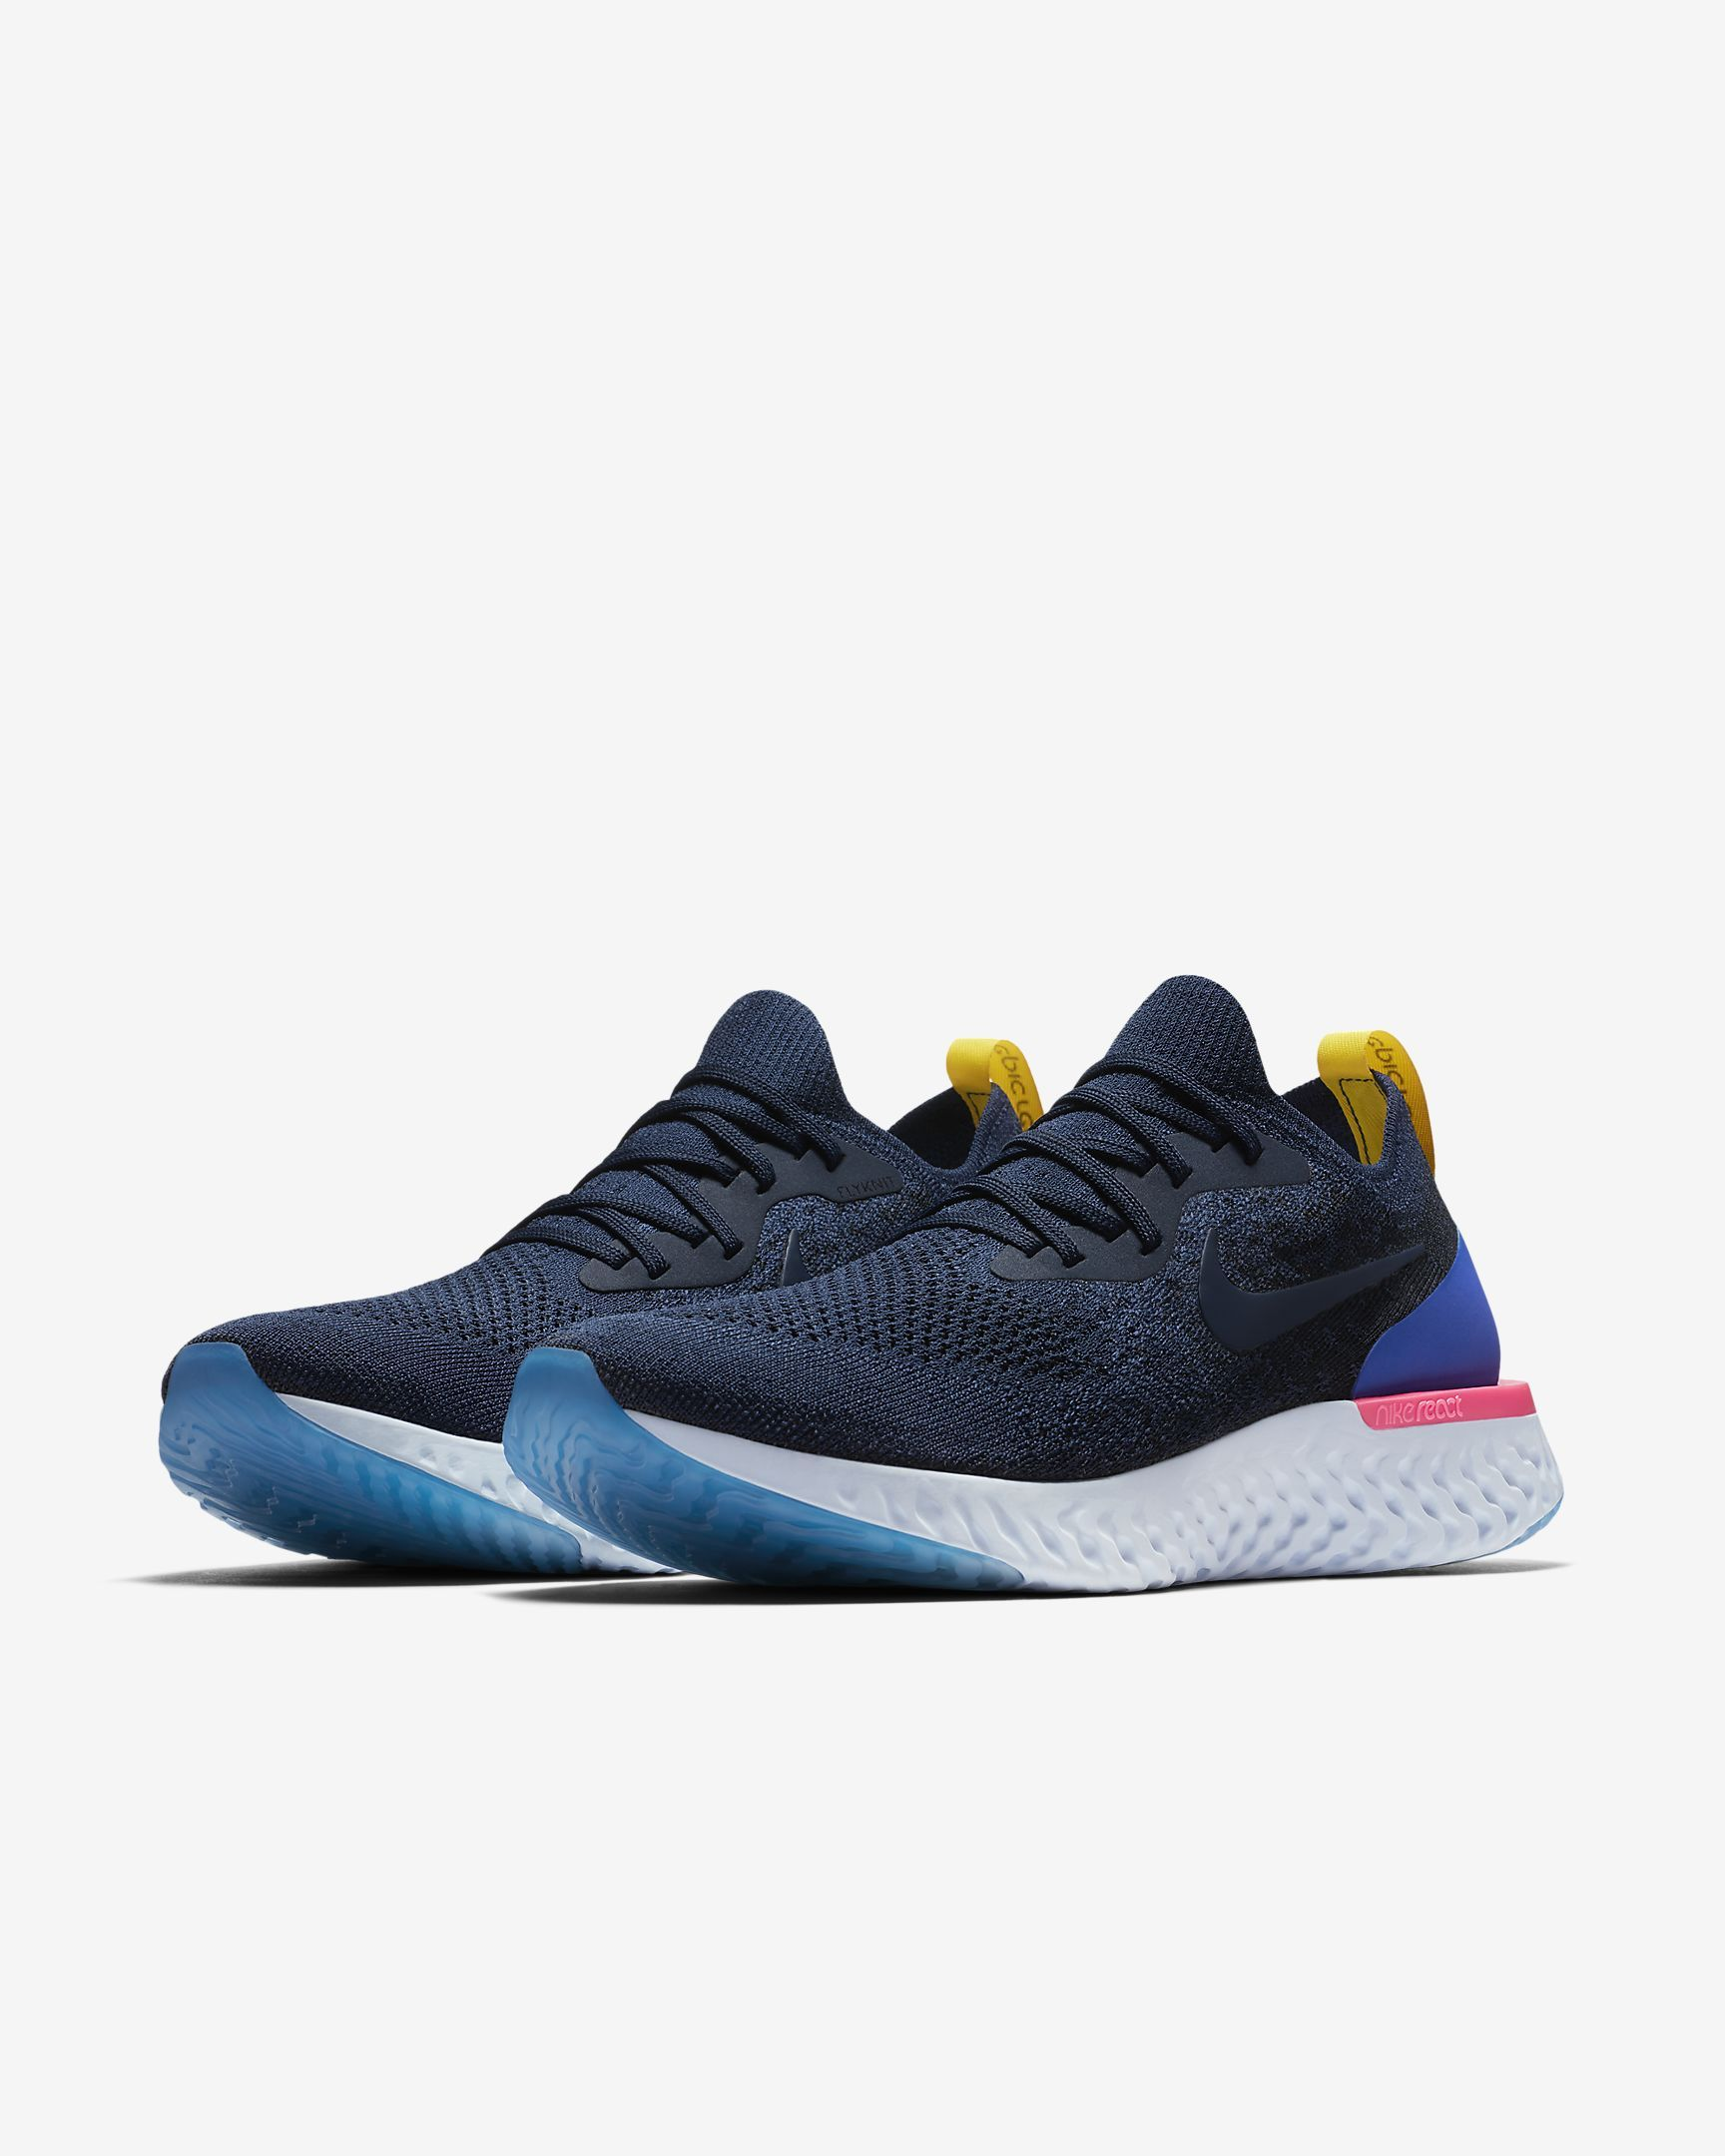 559902ca5ab09 Nike Epic React Flyknit Men's Running Shoe | Shoes in 2019 | Shoes ...